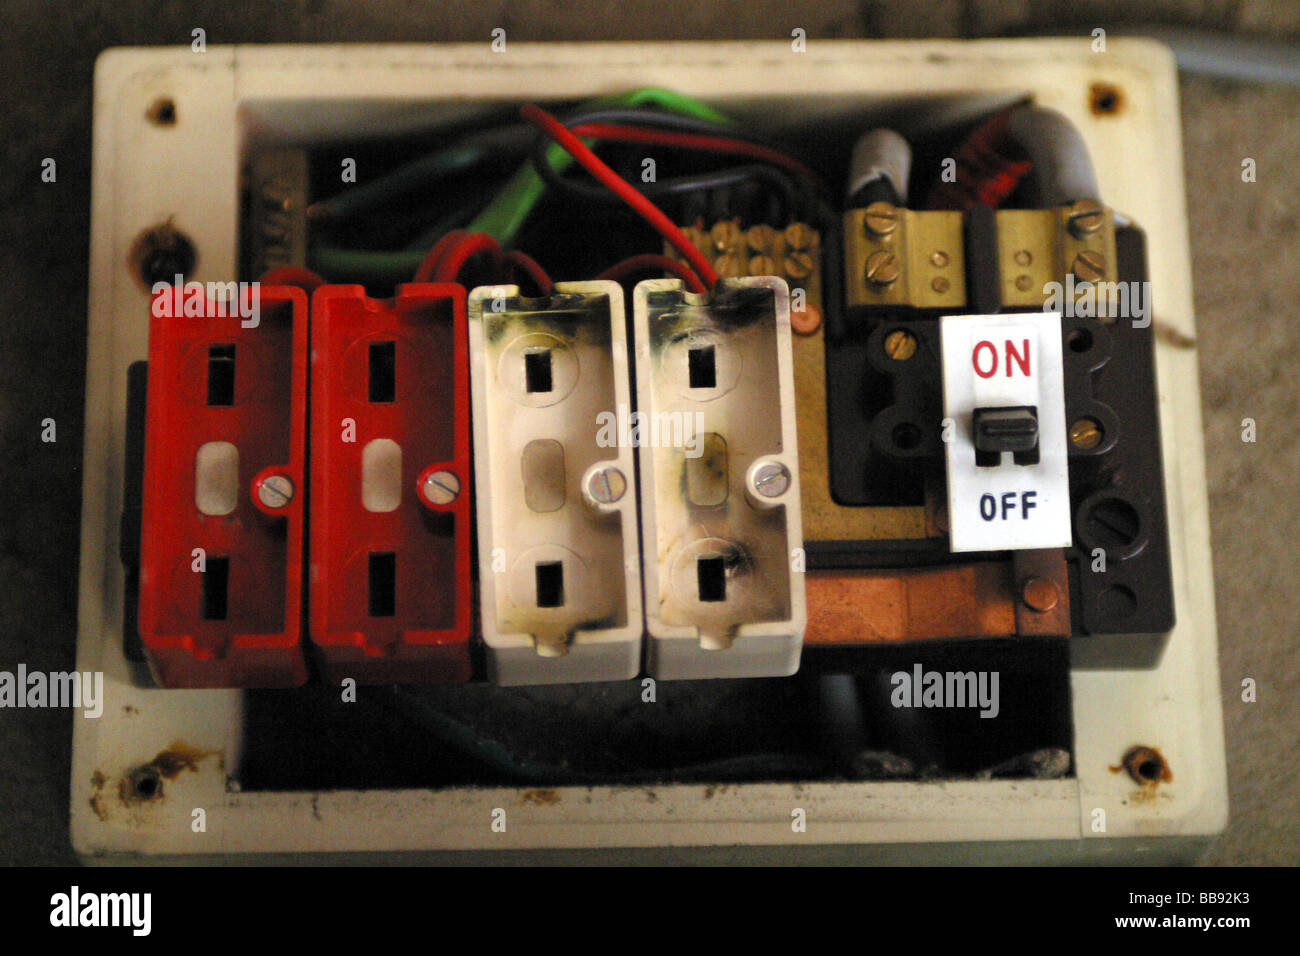 car fuse box on fire wiring library Fire Hose Box antique fuse box circuit board wiring diagrams box fuse box circuit builder answer key fuse box